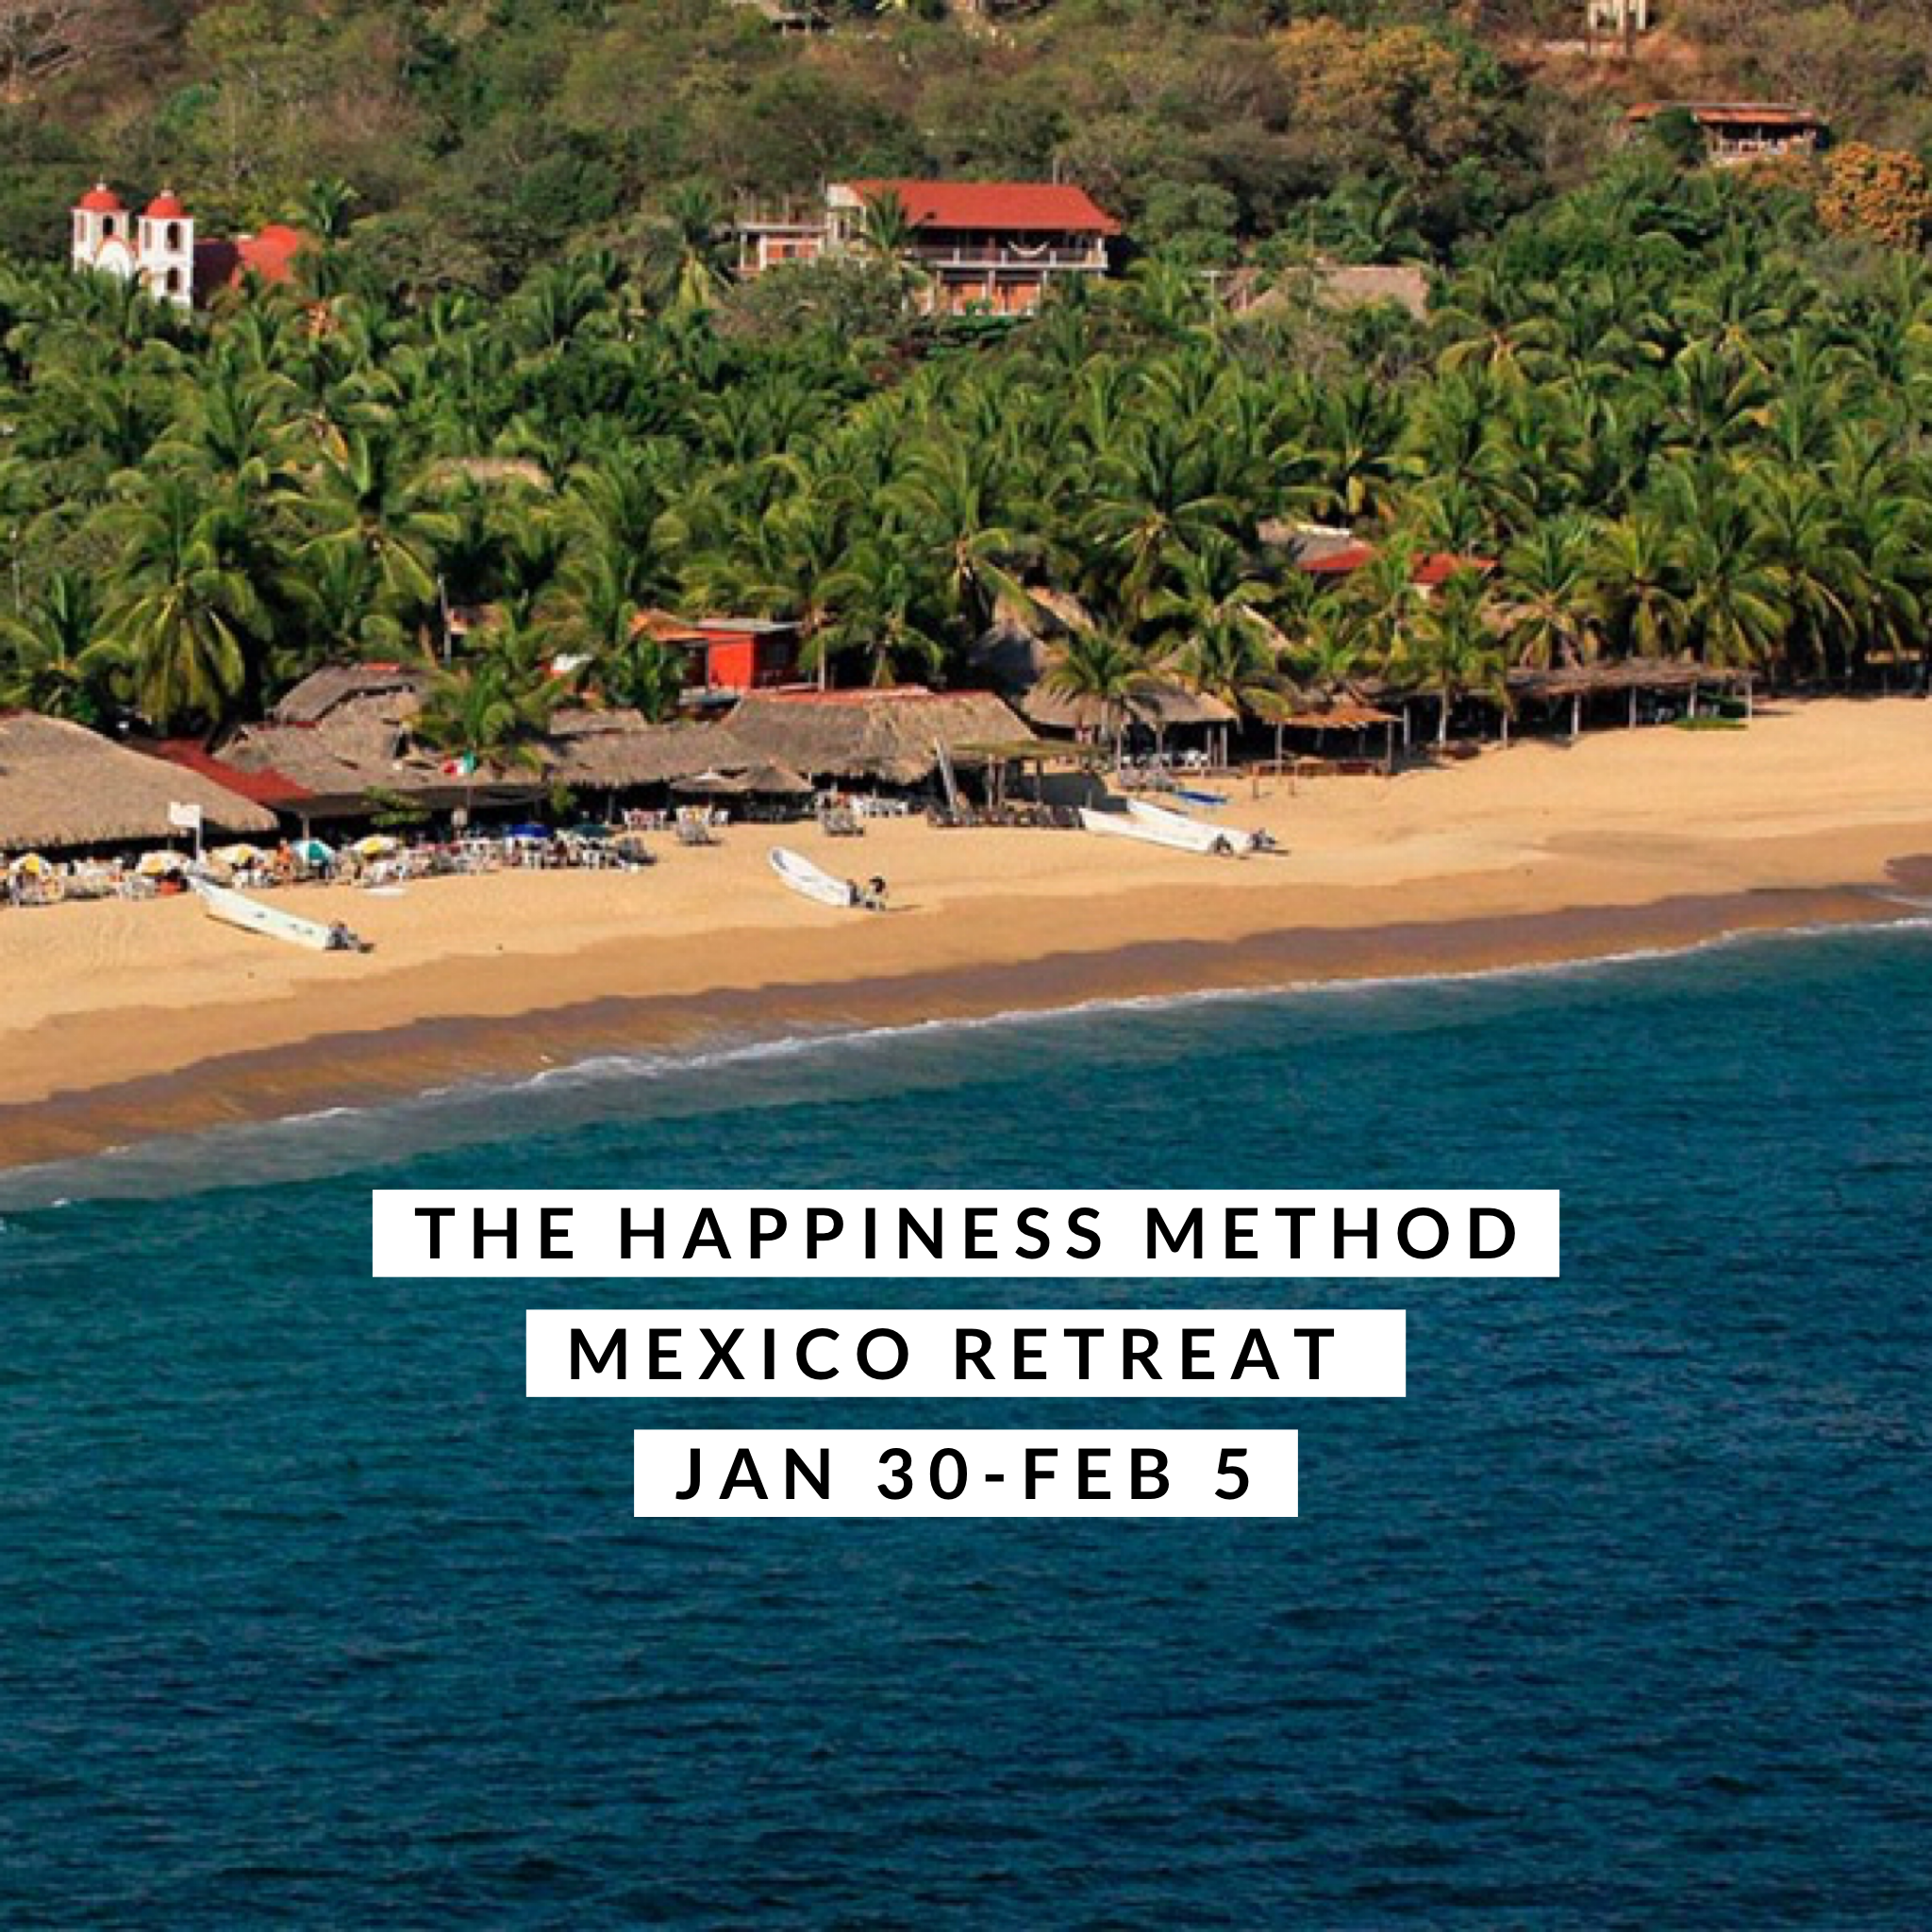 When was the last time you dedicated yourself to the things that bring you true joy?This special retreat was designed for you to come play, heal, and create deeper connections to yourself and nature in the hidden paradise of Mazunte, Mexico. - MEDITATIONBREATHWORKYOGAWISDOMADVENTURELEARN MORE HERE